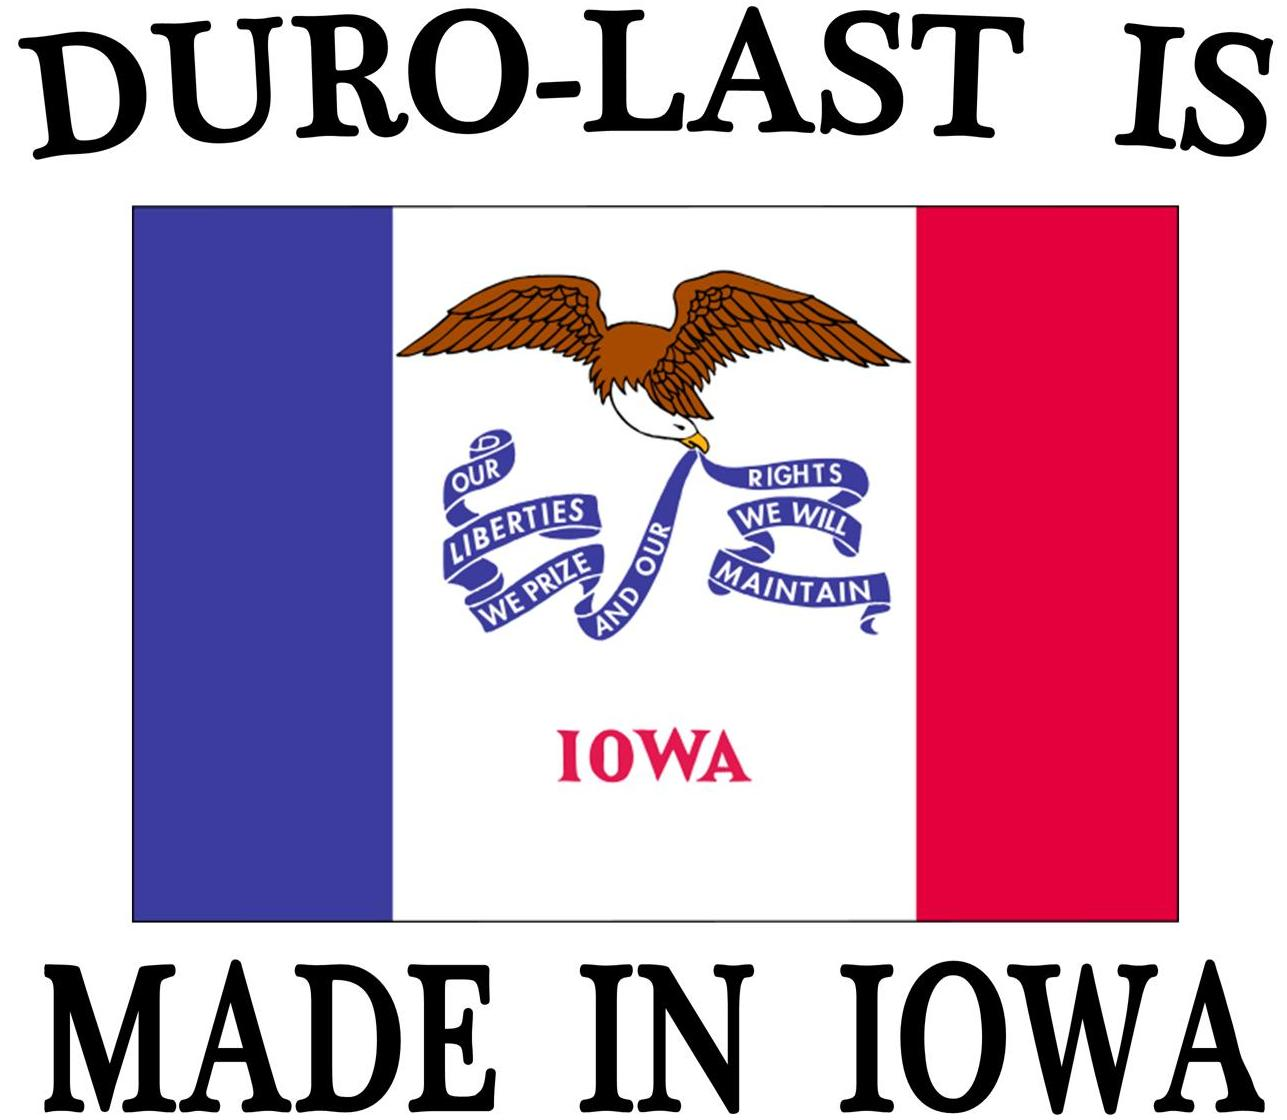 Made in Iowa